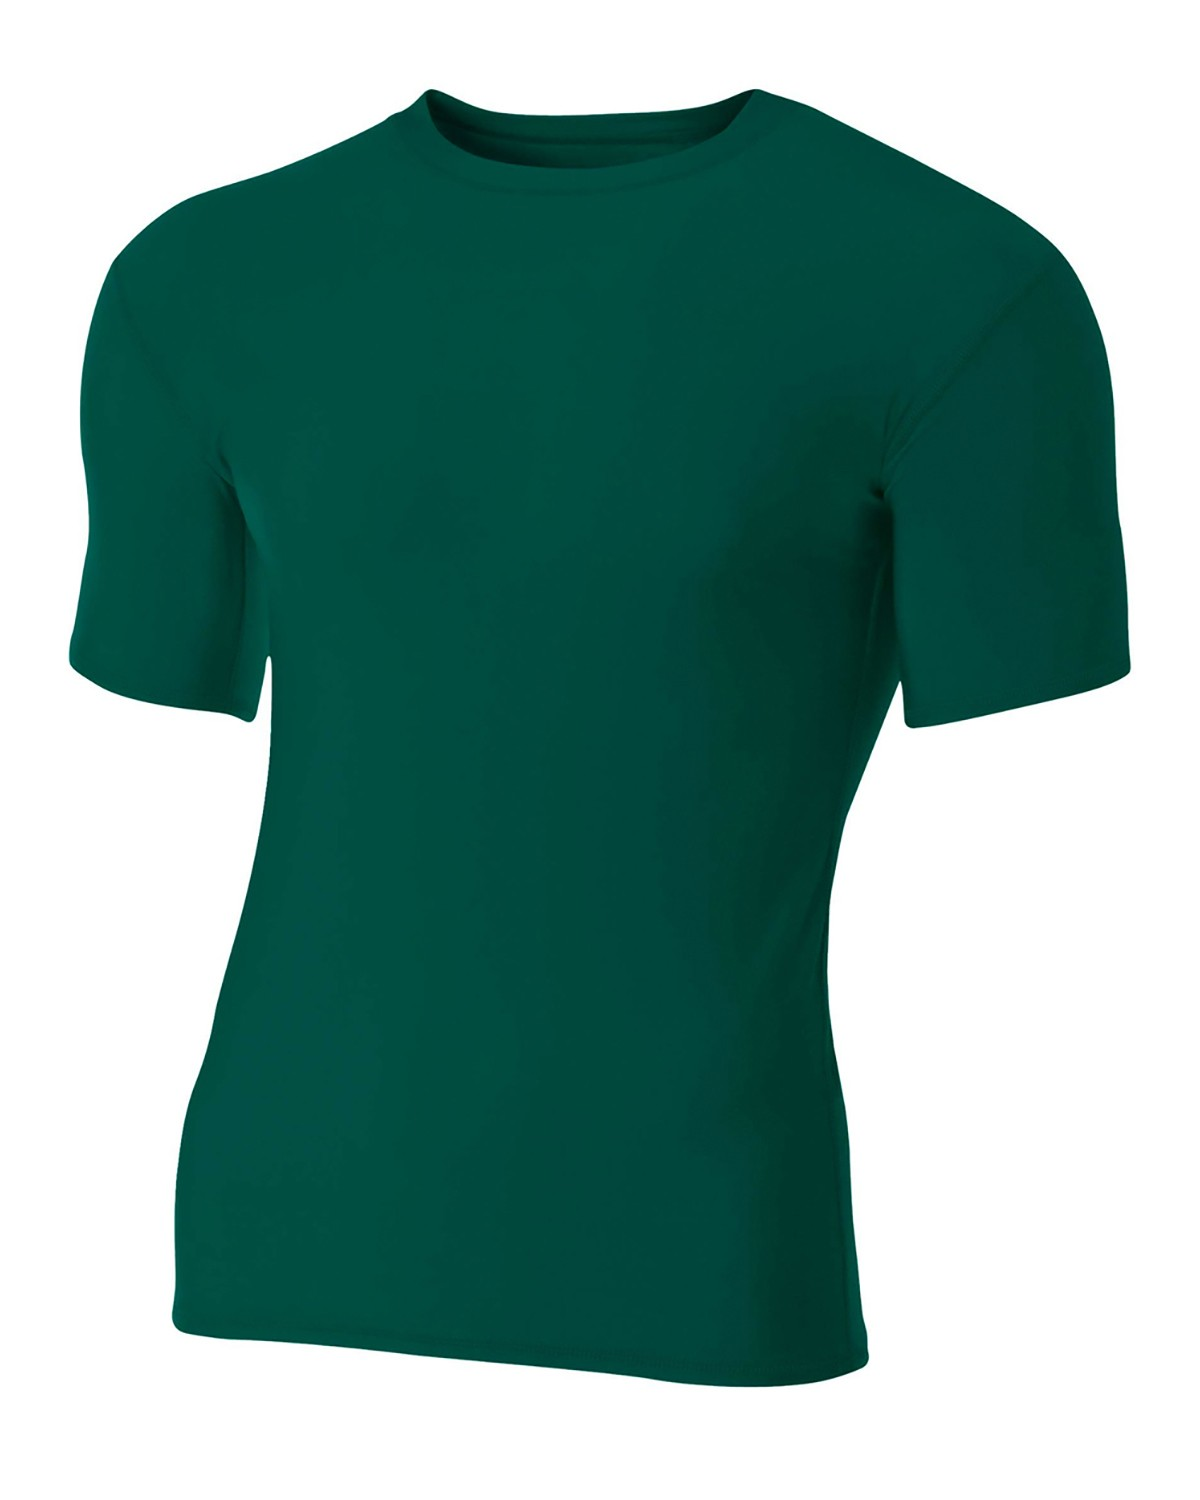 N3130 A4 Drop Ship FOREST GREEN